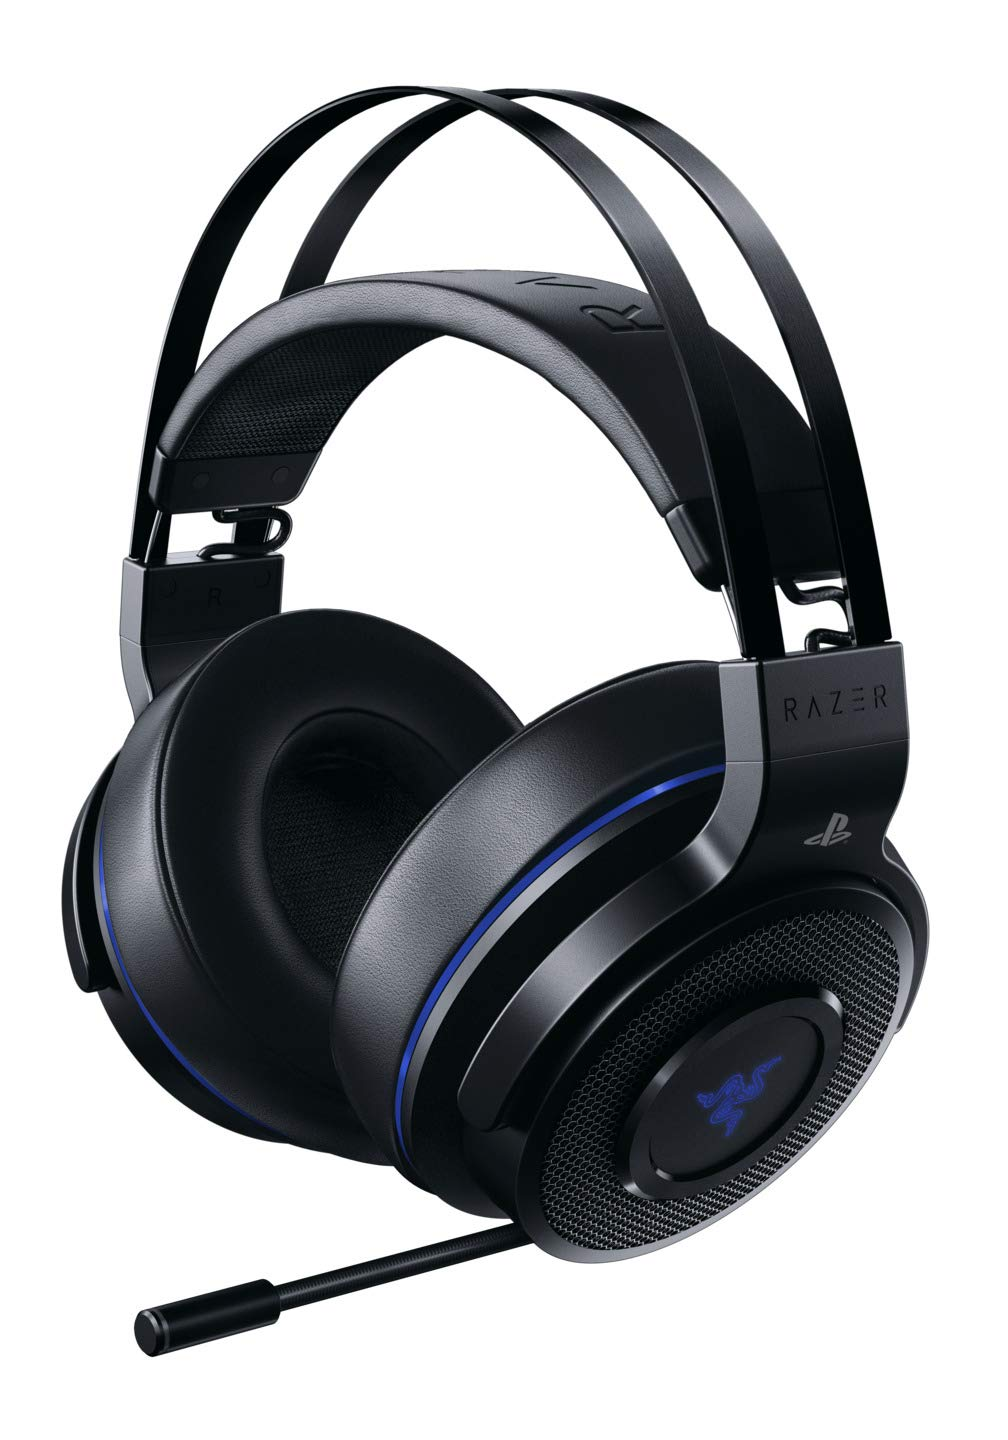 Razer Thresher 7.1: Dolby 7.1 Surround Sound - Lag-Free Wireless Connection - Retractable Digital Microphone - Gaming Headset Works with PC & PS4 Razer USA Ltd RZ04-02580100-R3U1